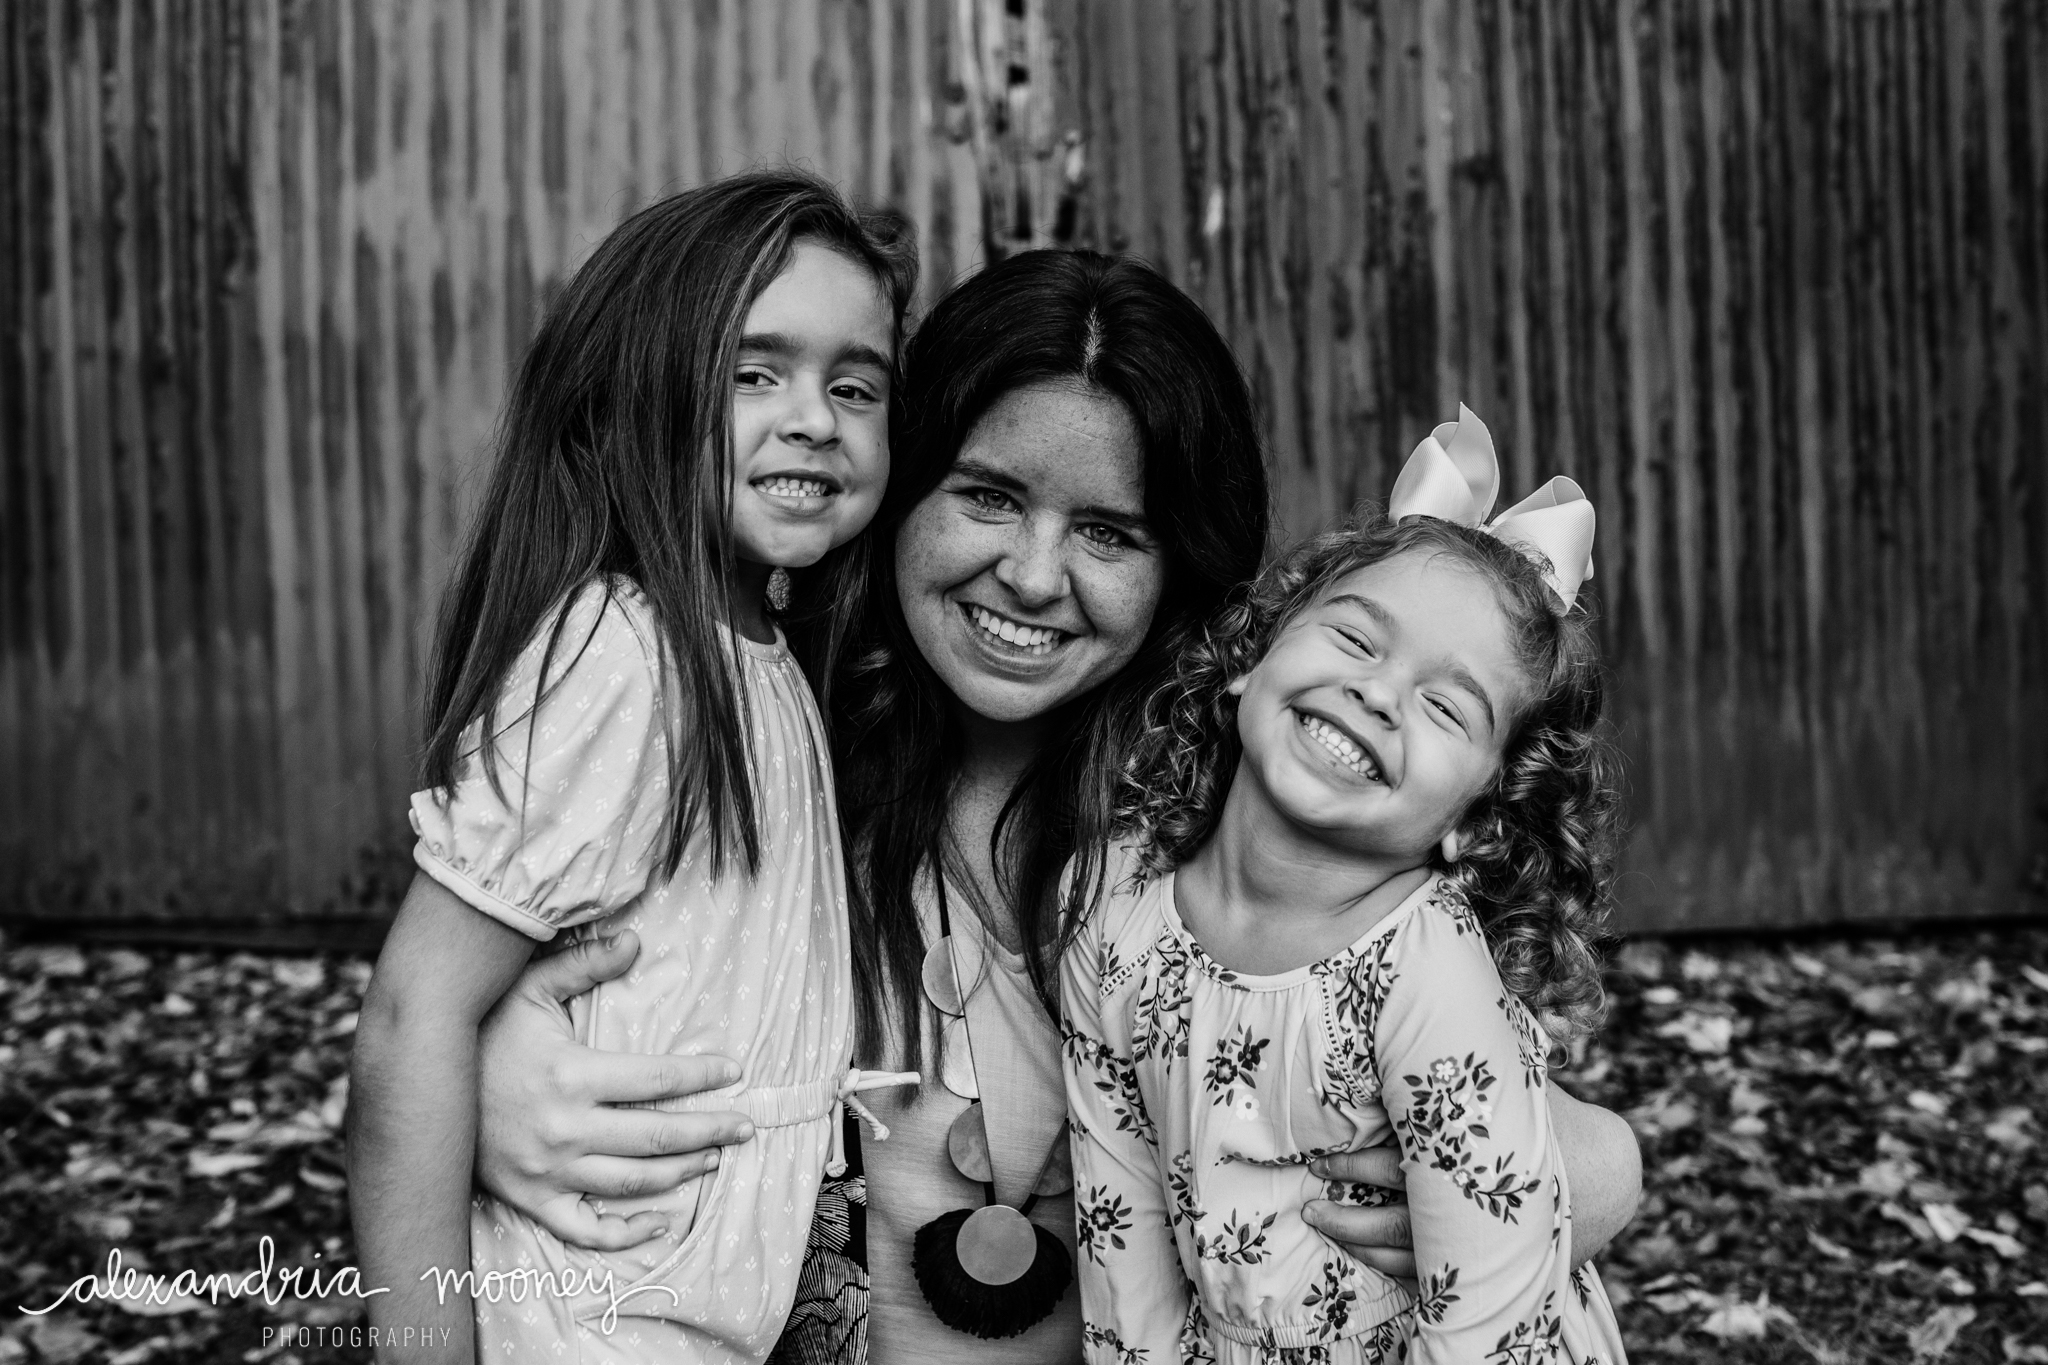 ThePerezFamily_Watermarked-22.jpg